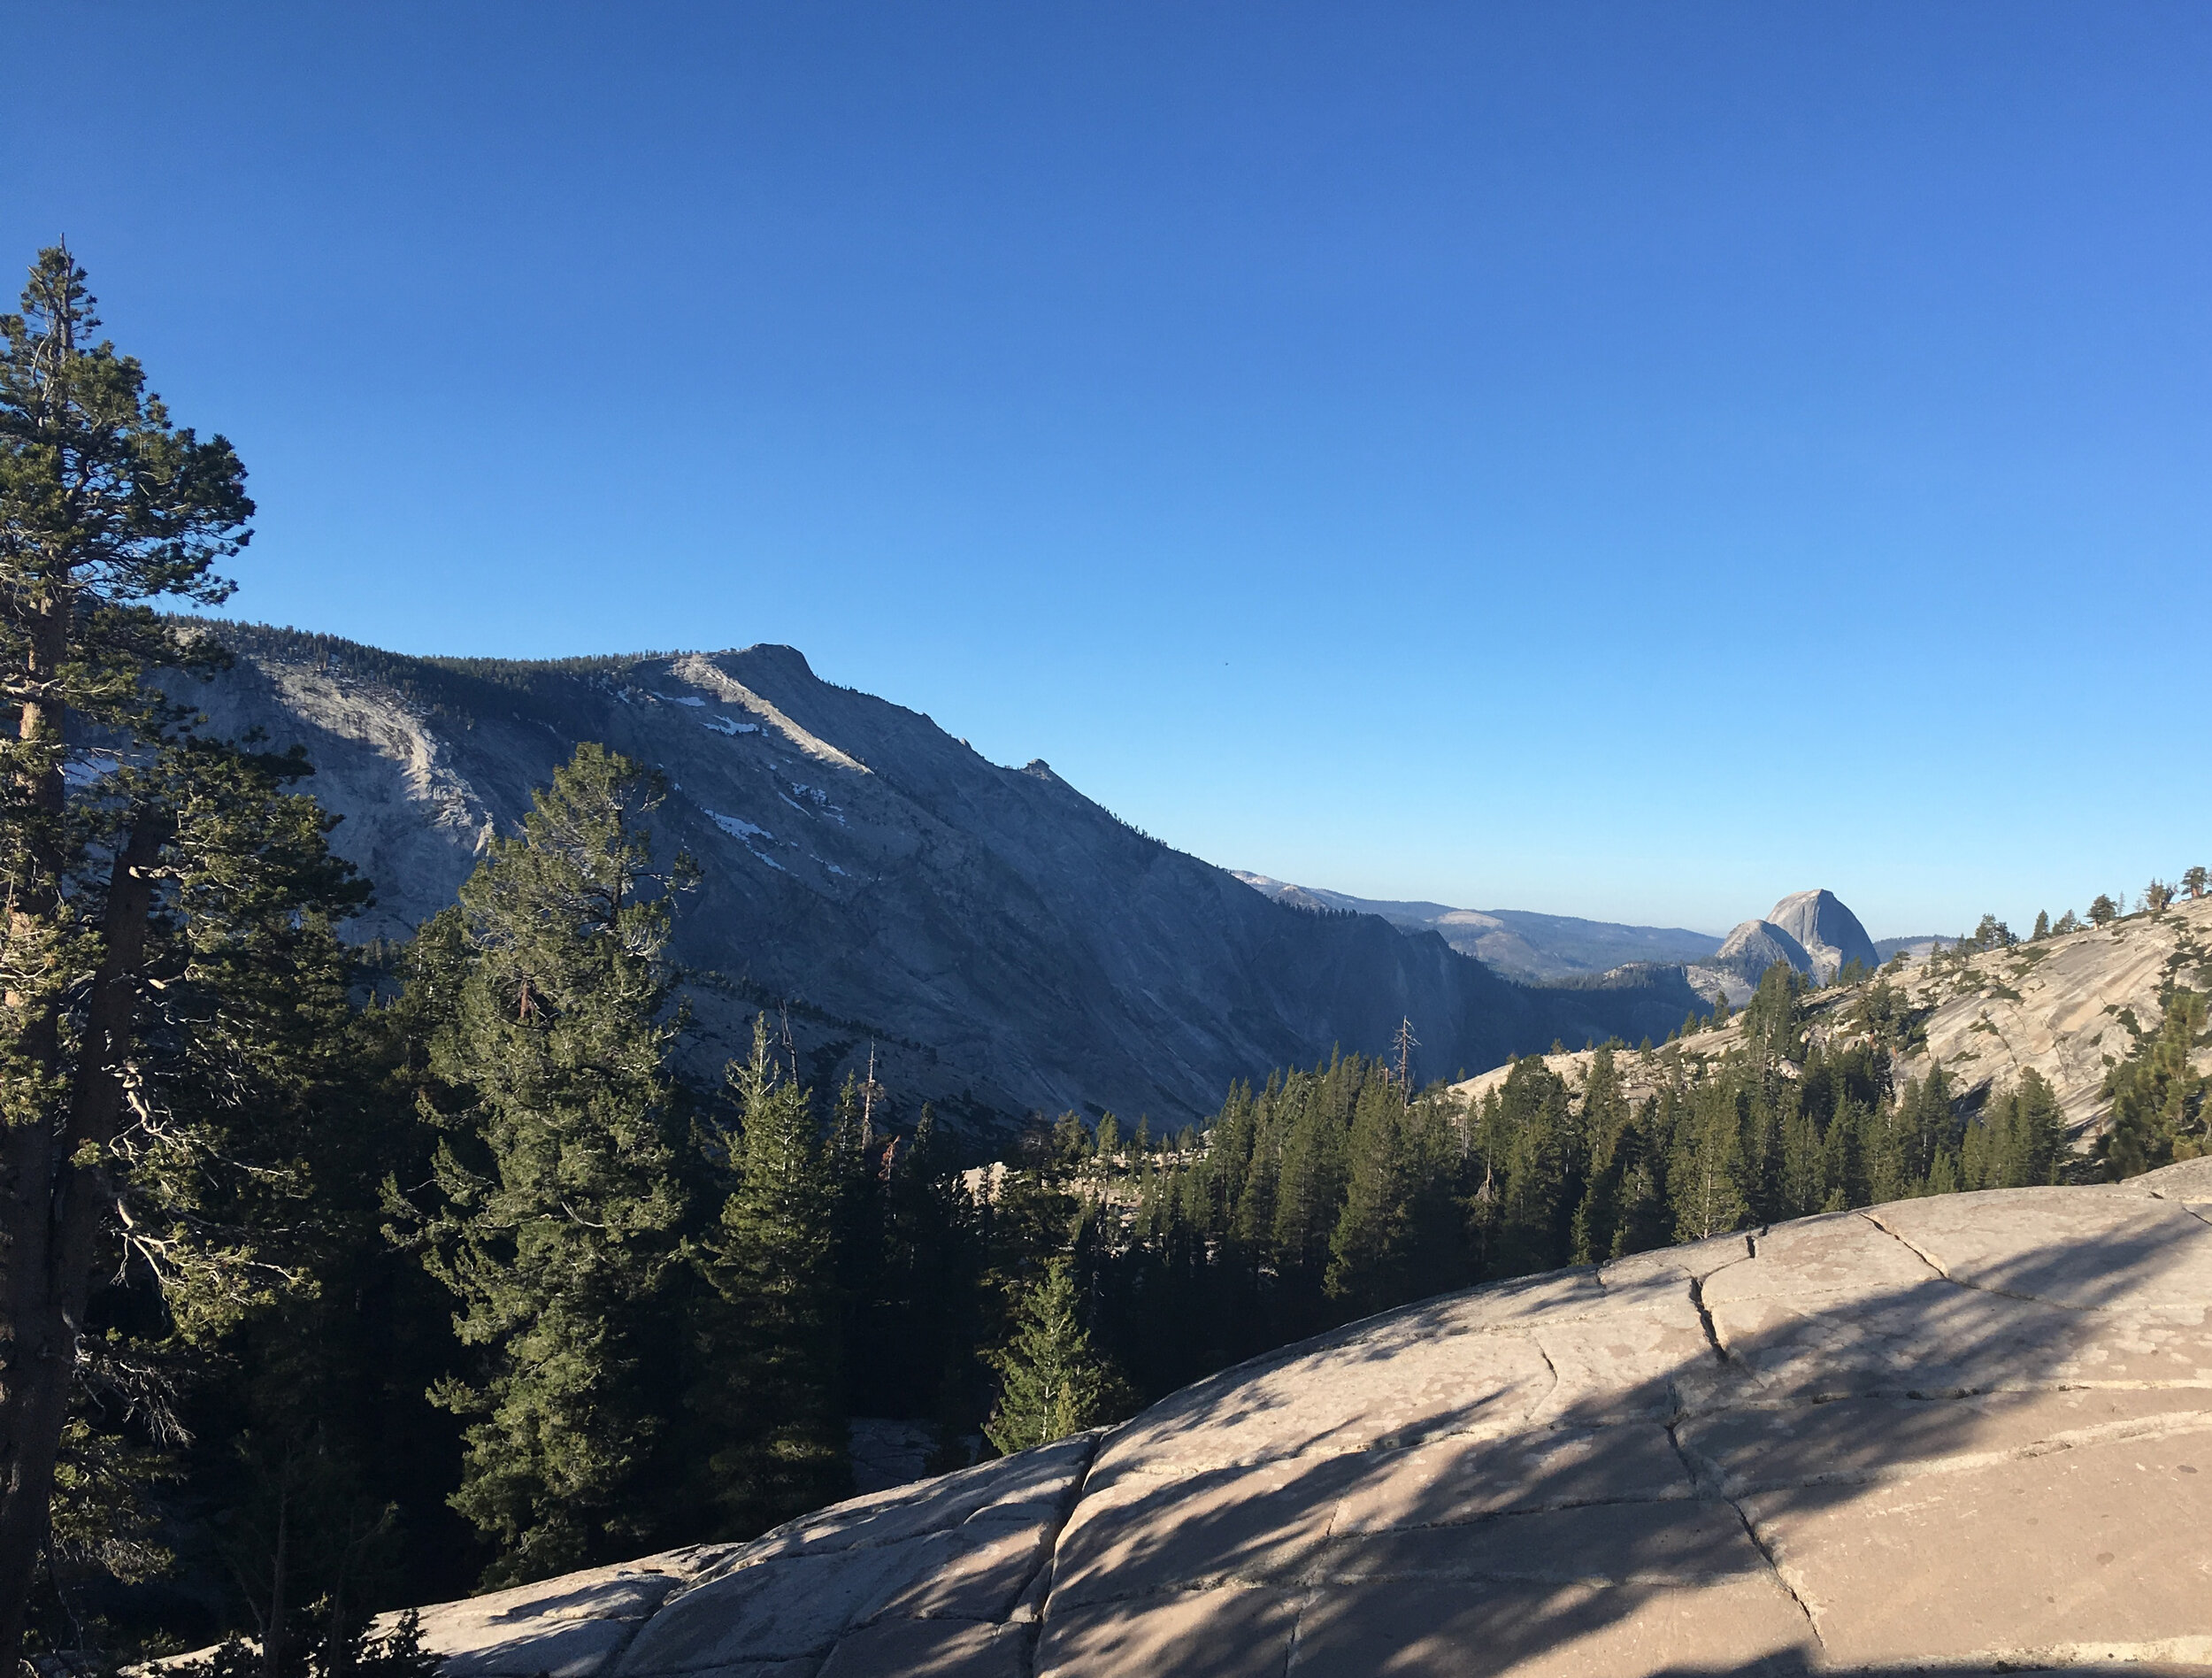 Clouds Rest and Half Dome - July 2019 - As viewed from Olmstead Point